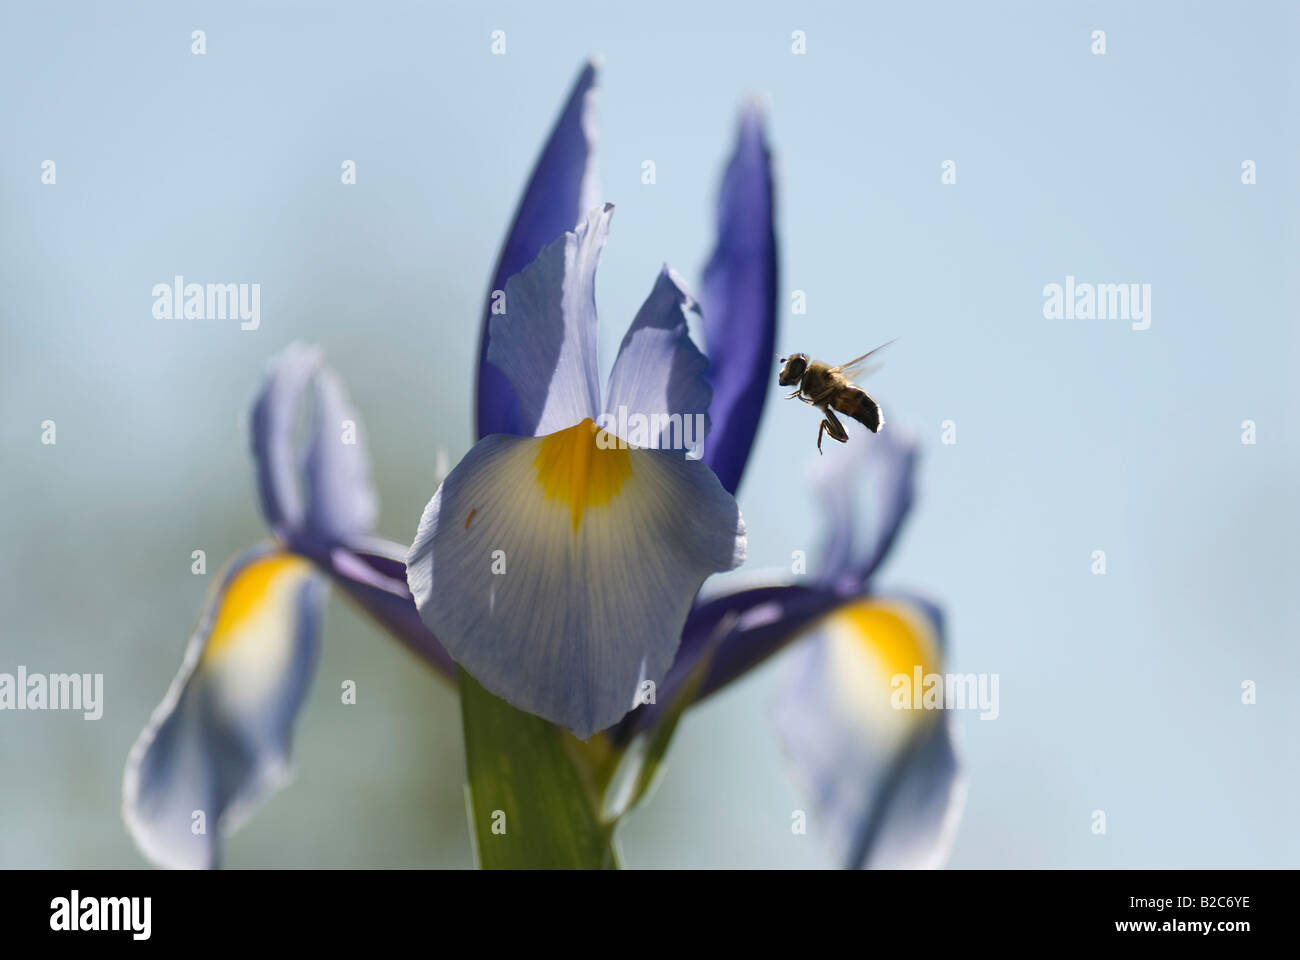 Western or European Honey Bee (Apis mellifica) pollinating an Iris (Iris), Cannes, Alpes Maritimes, France, Europe - Stock Image